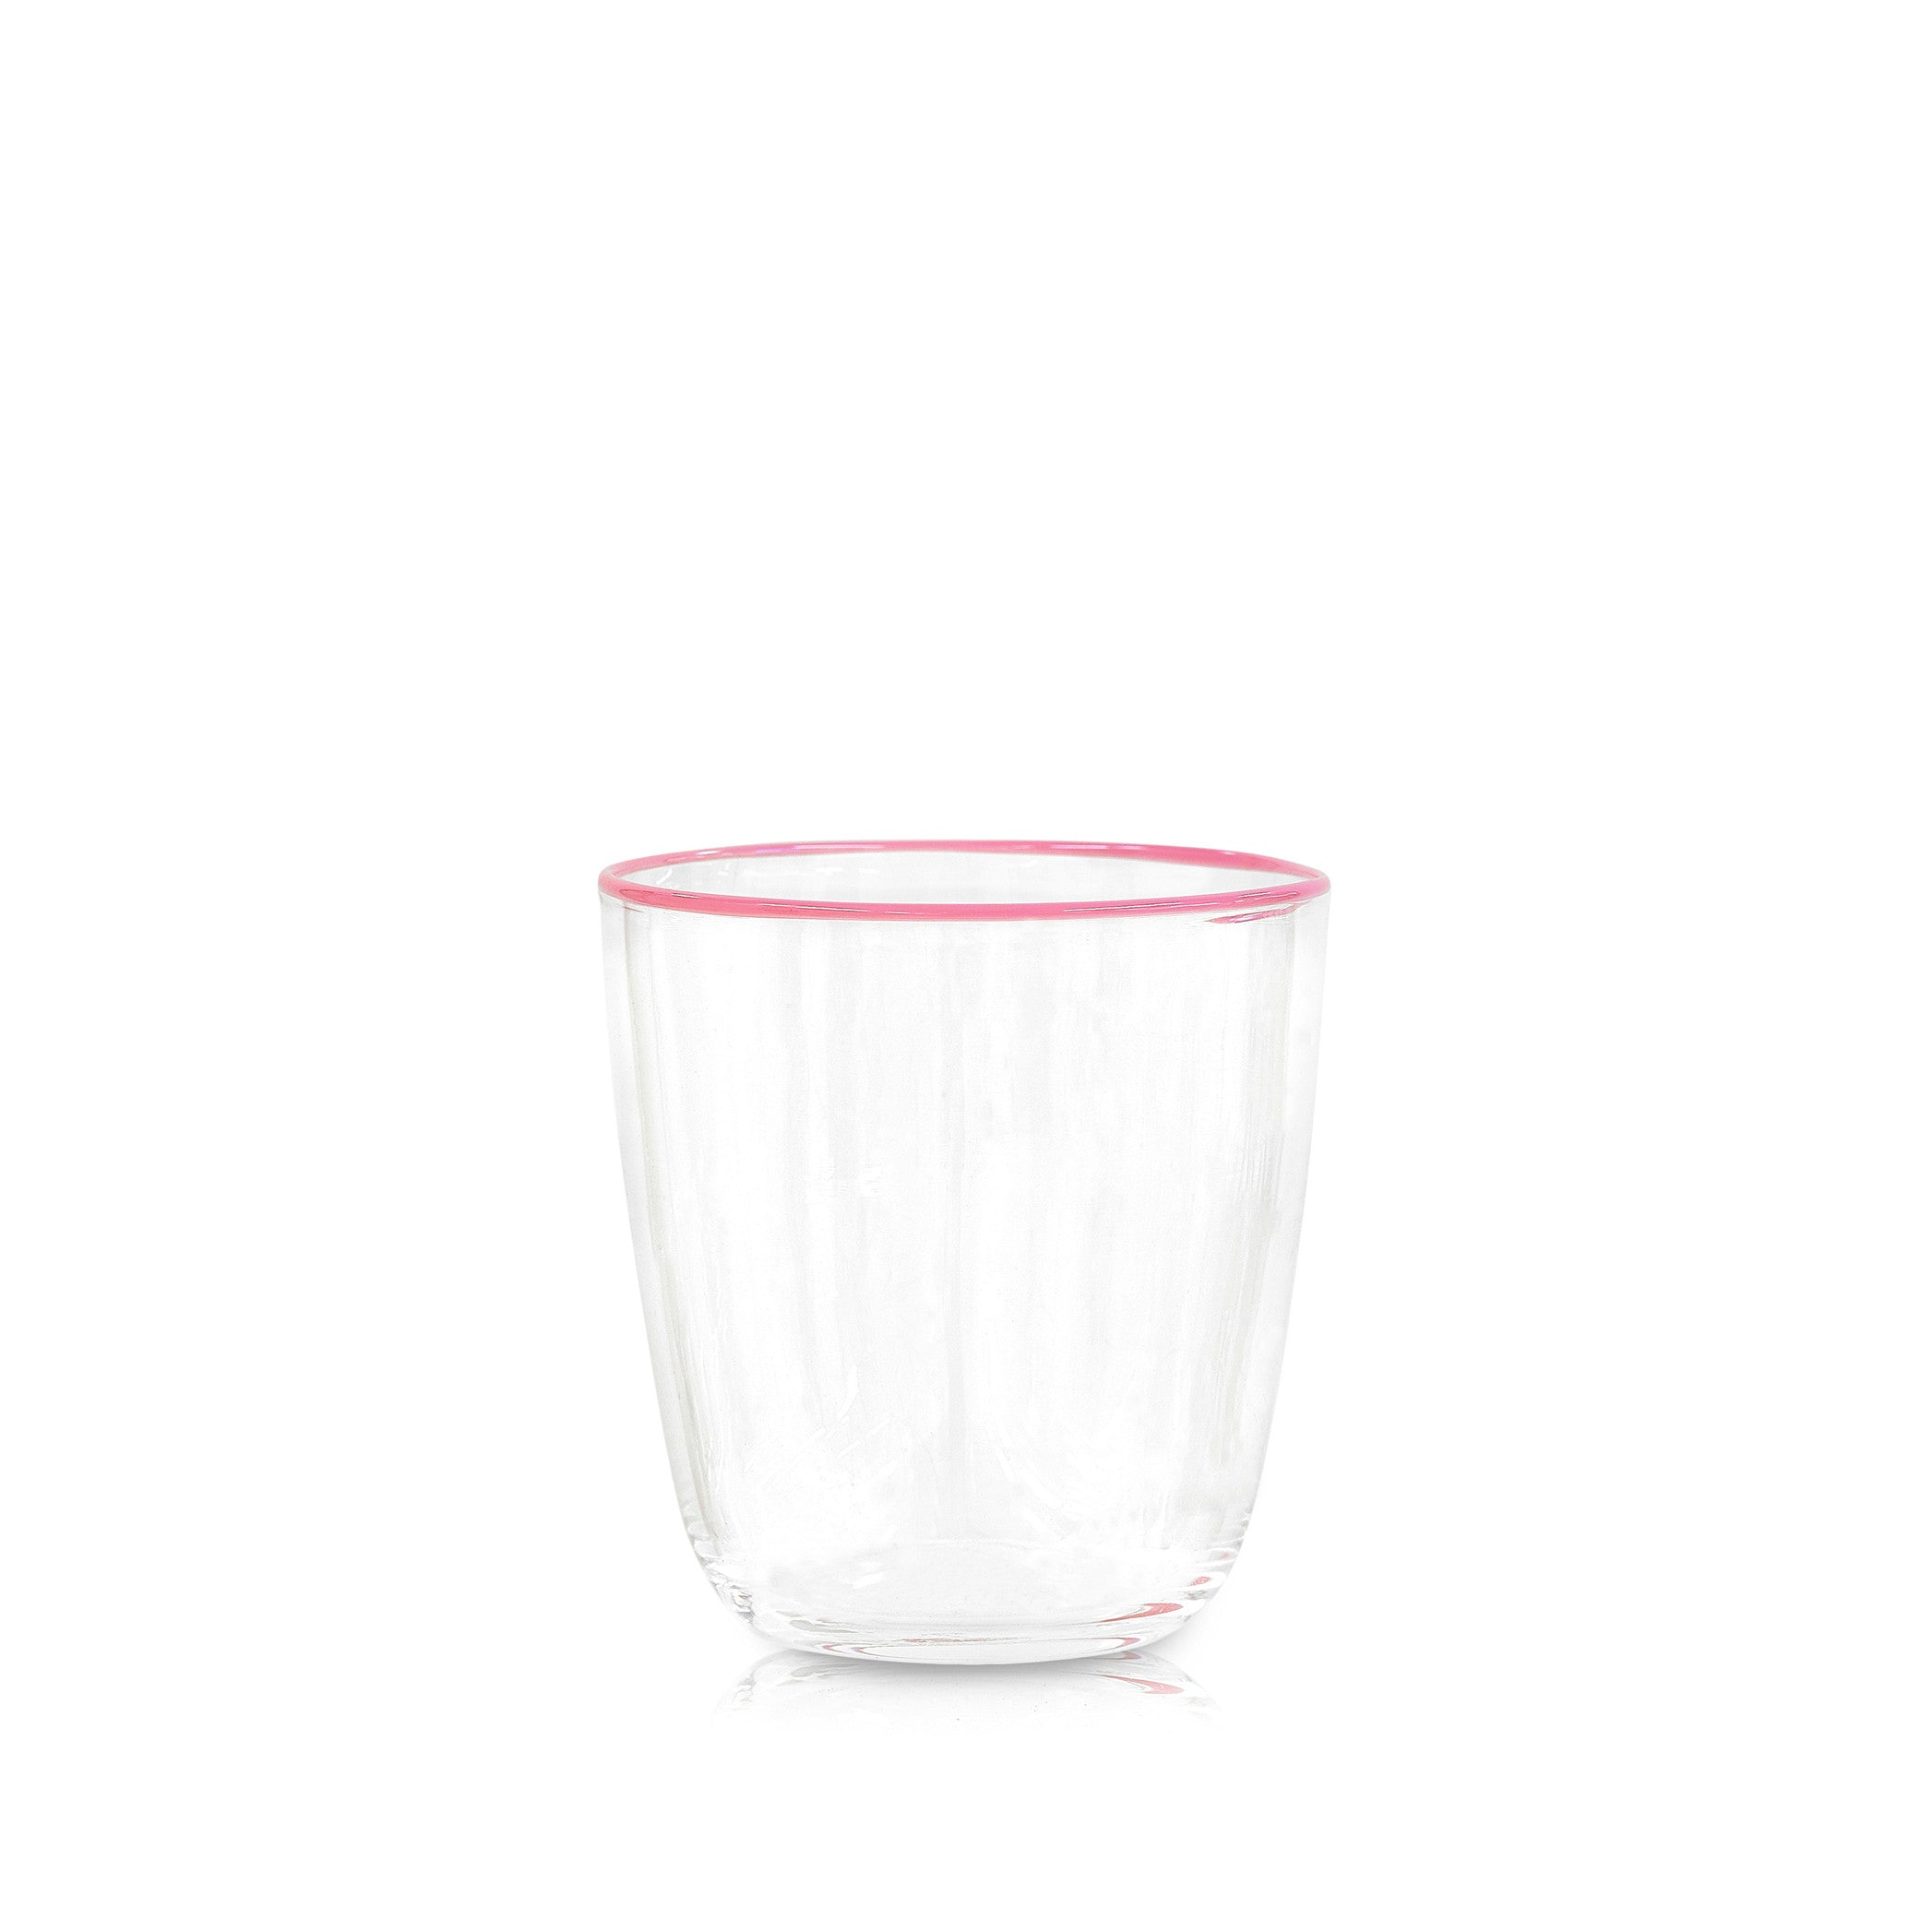 Handblown Clear Bumba Glass with Rose Pink Rim